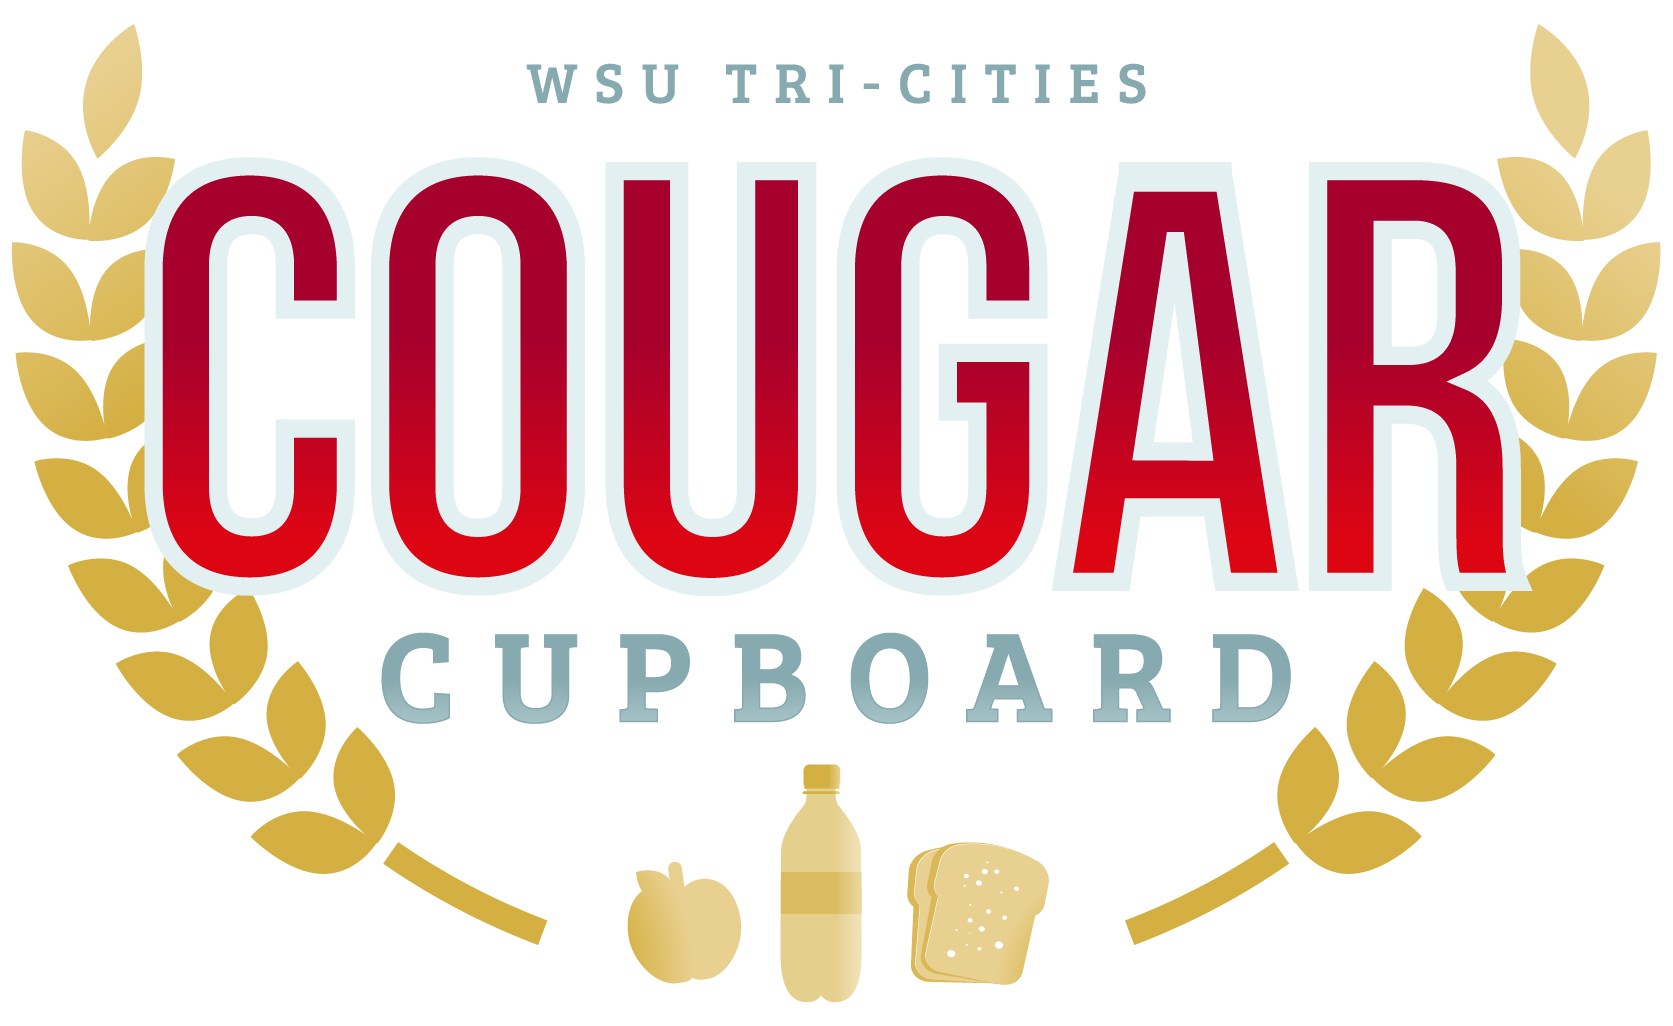 food bank logo, cougar cupboard logo